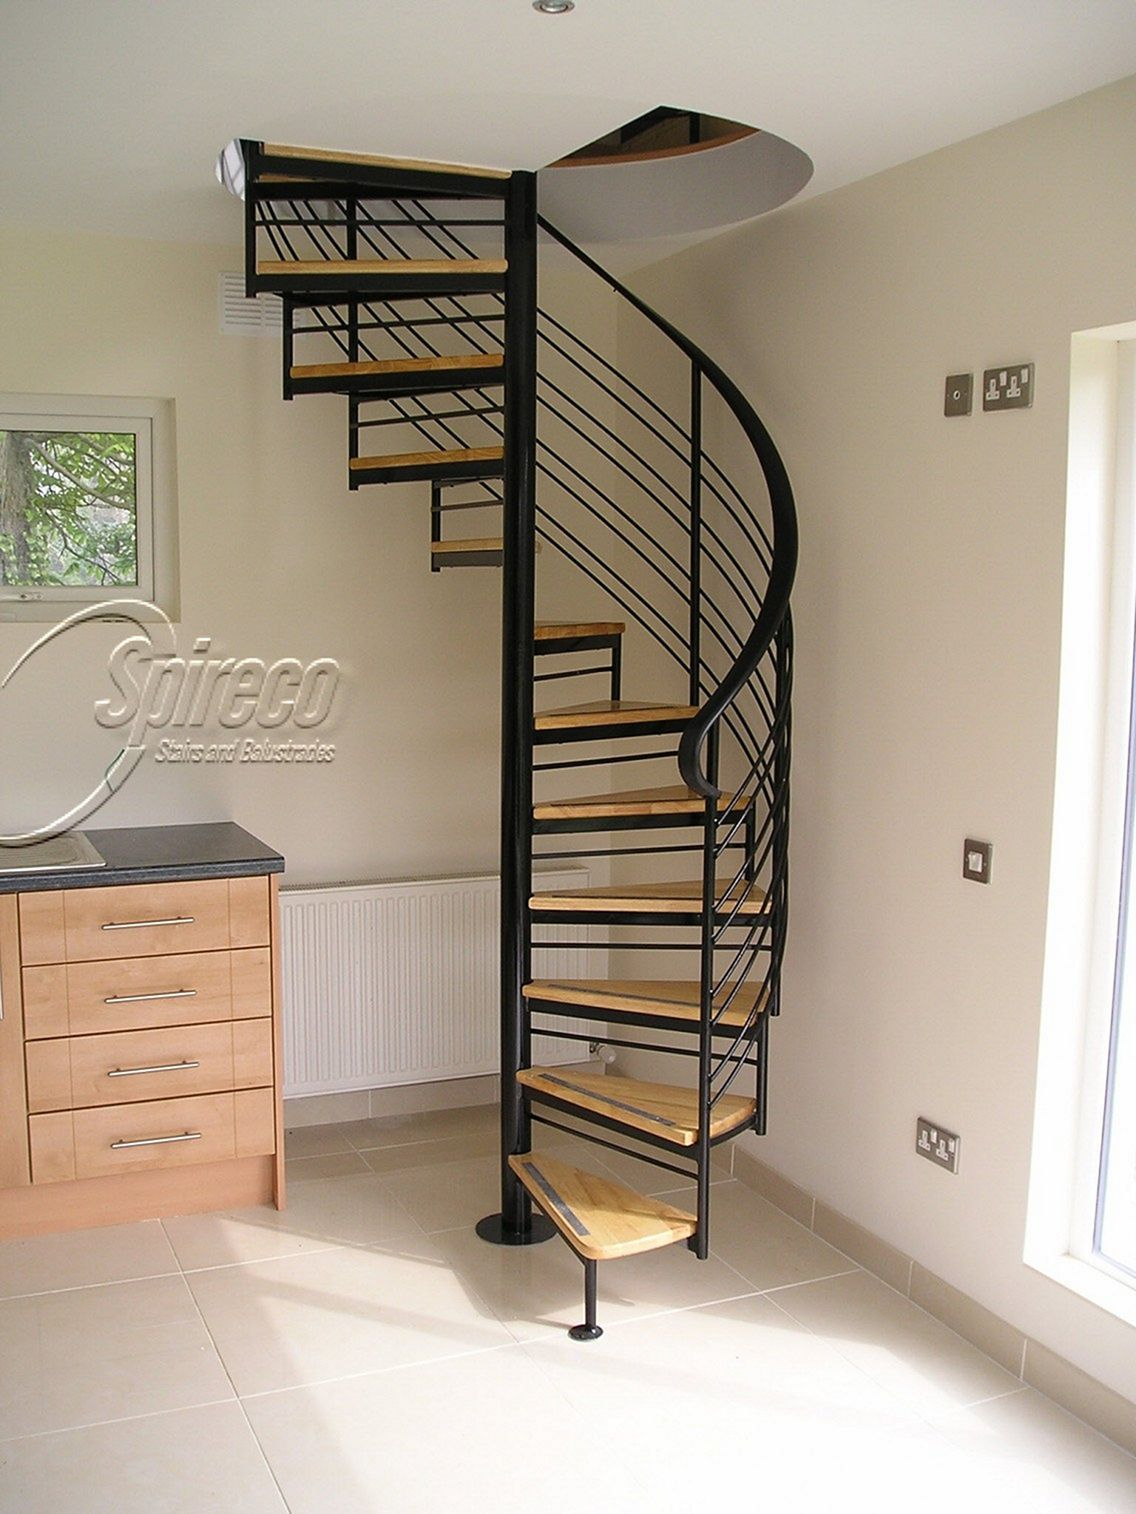 25 Wonderful Spiral Staircase Design Ideas For Your 2Nd Floor   Stairs To Second Floor Design   Bathroom Next   Space Saving   Square Shaped   Kitchen   Stairway